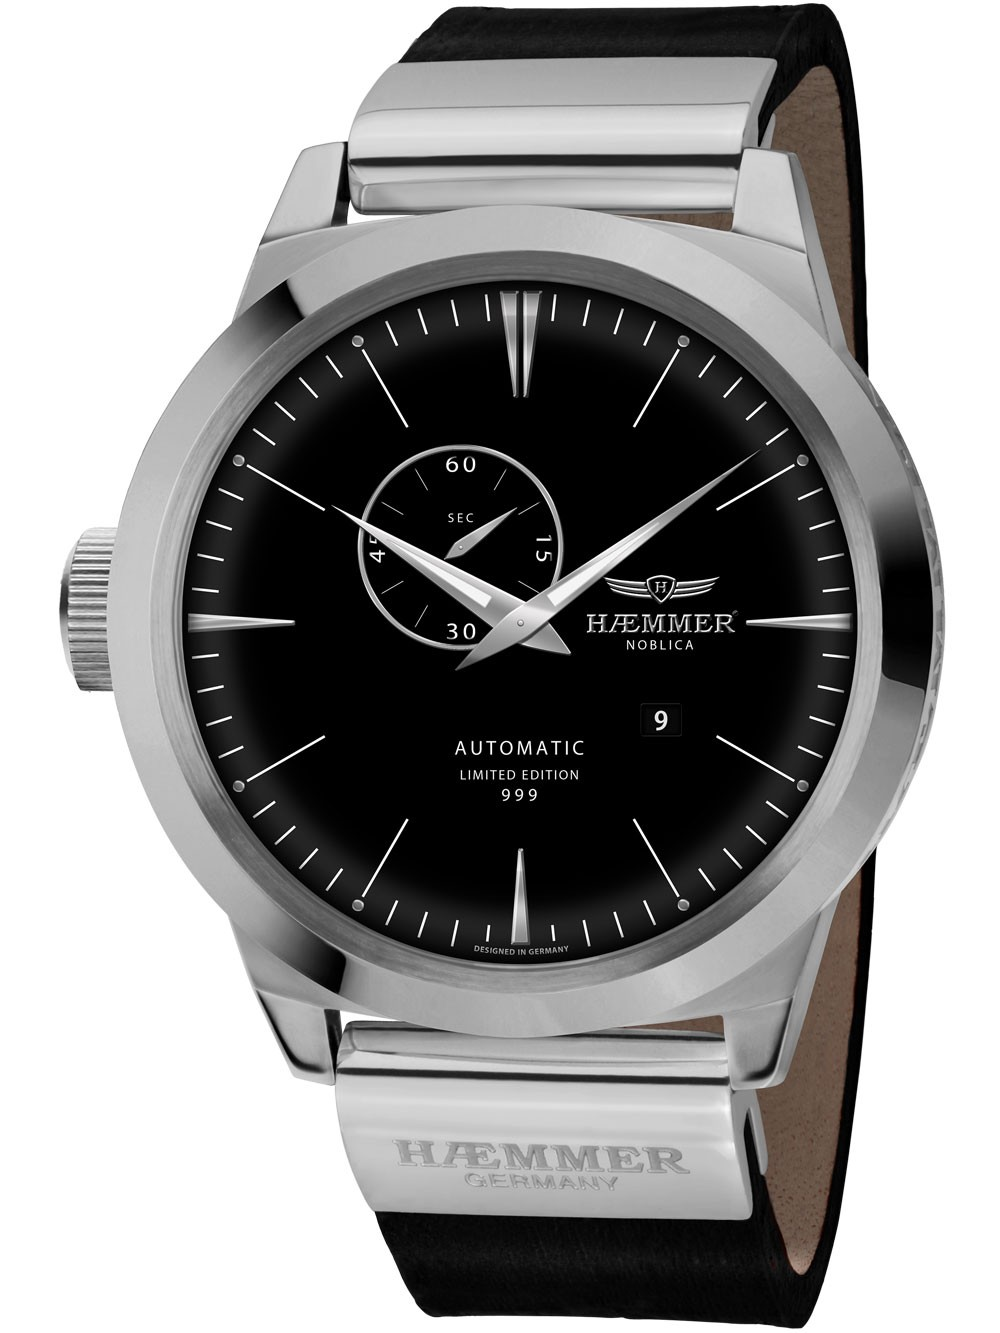 Haemmer HA-01 Imperial Noblica Autom. 50 mm 10 ATM Limited X/999